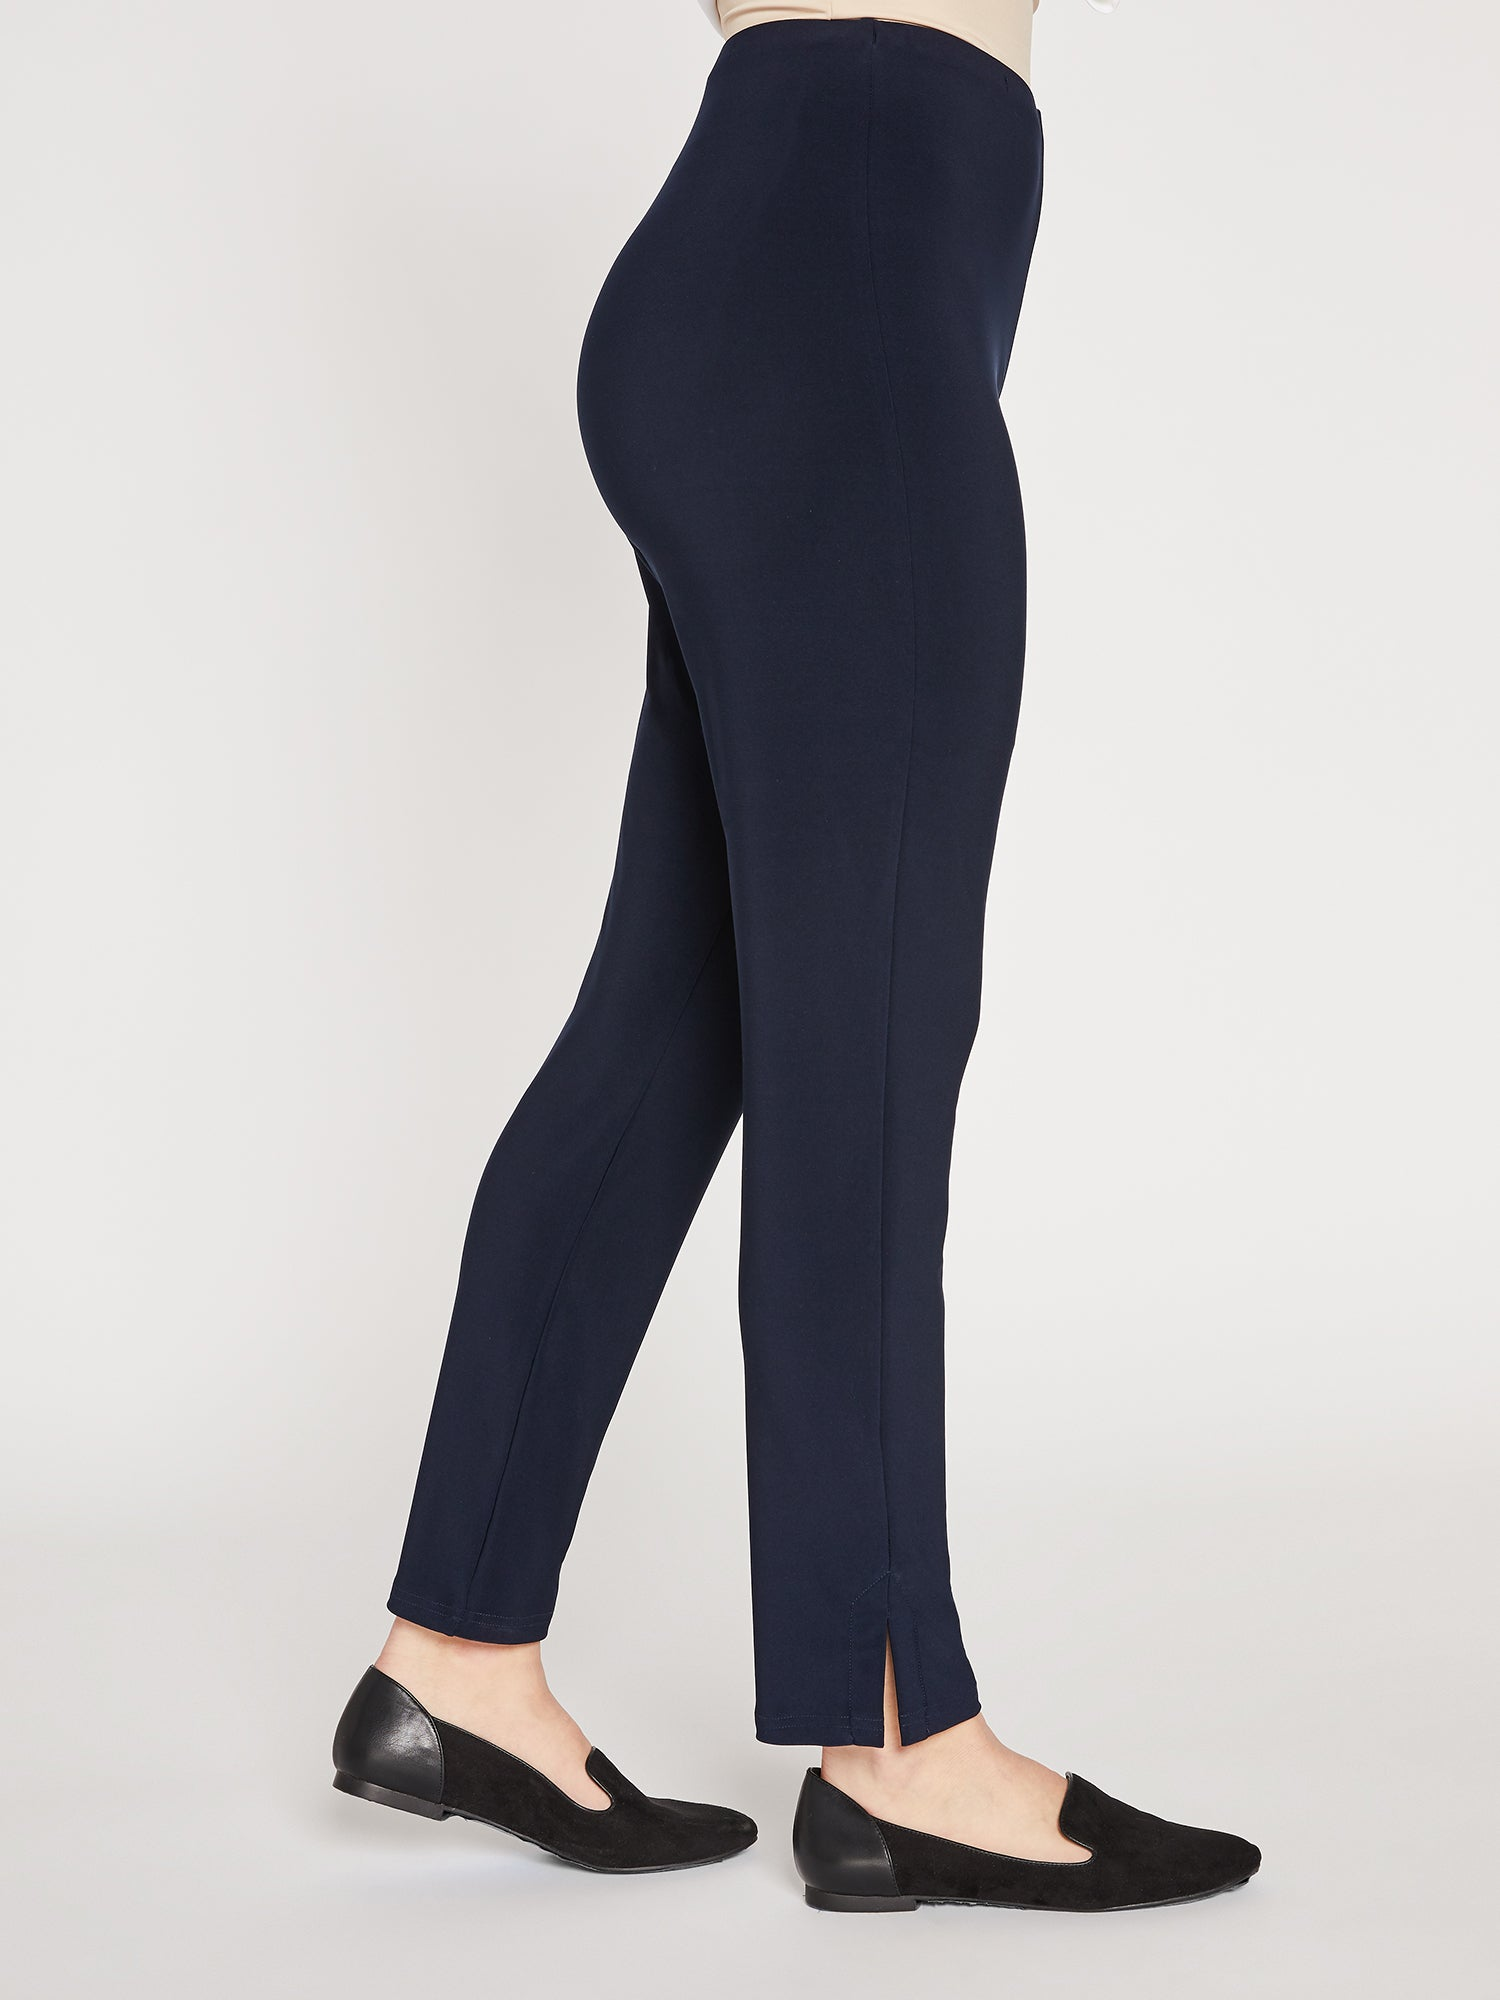 Sympli Narrow Pant Midi - Navy - Statement Boutique